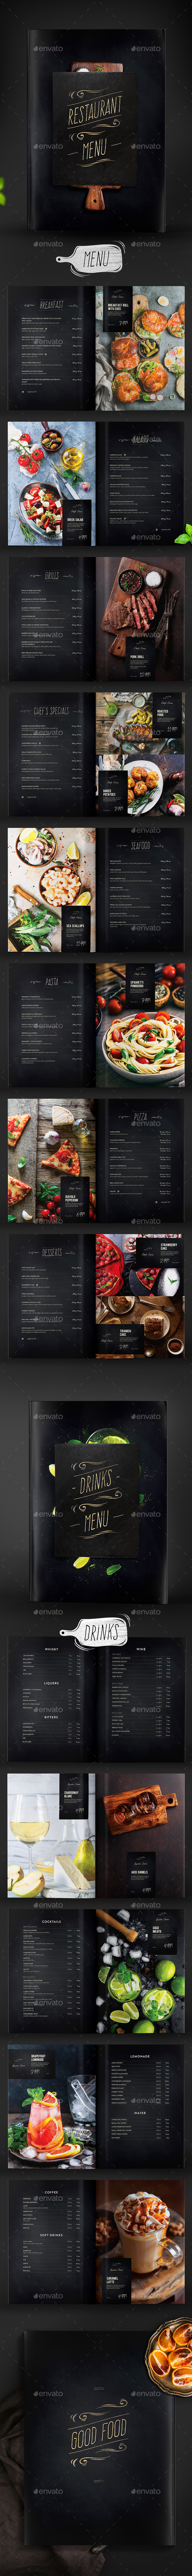 Restaurant Menu -  Food & Drinks - Food Menus Print Templates